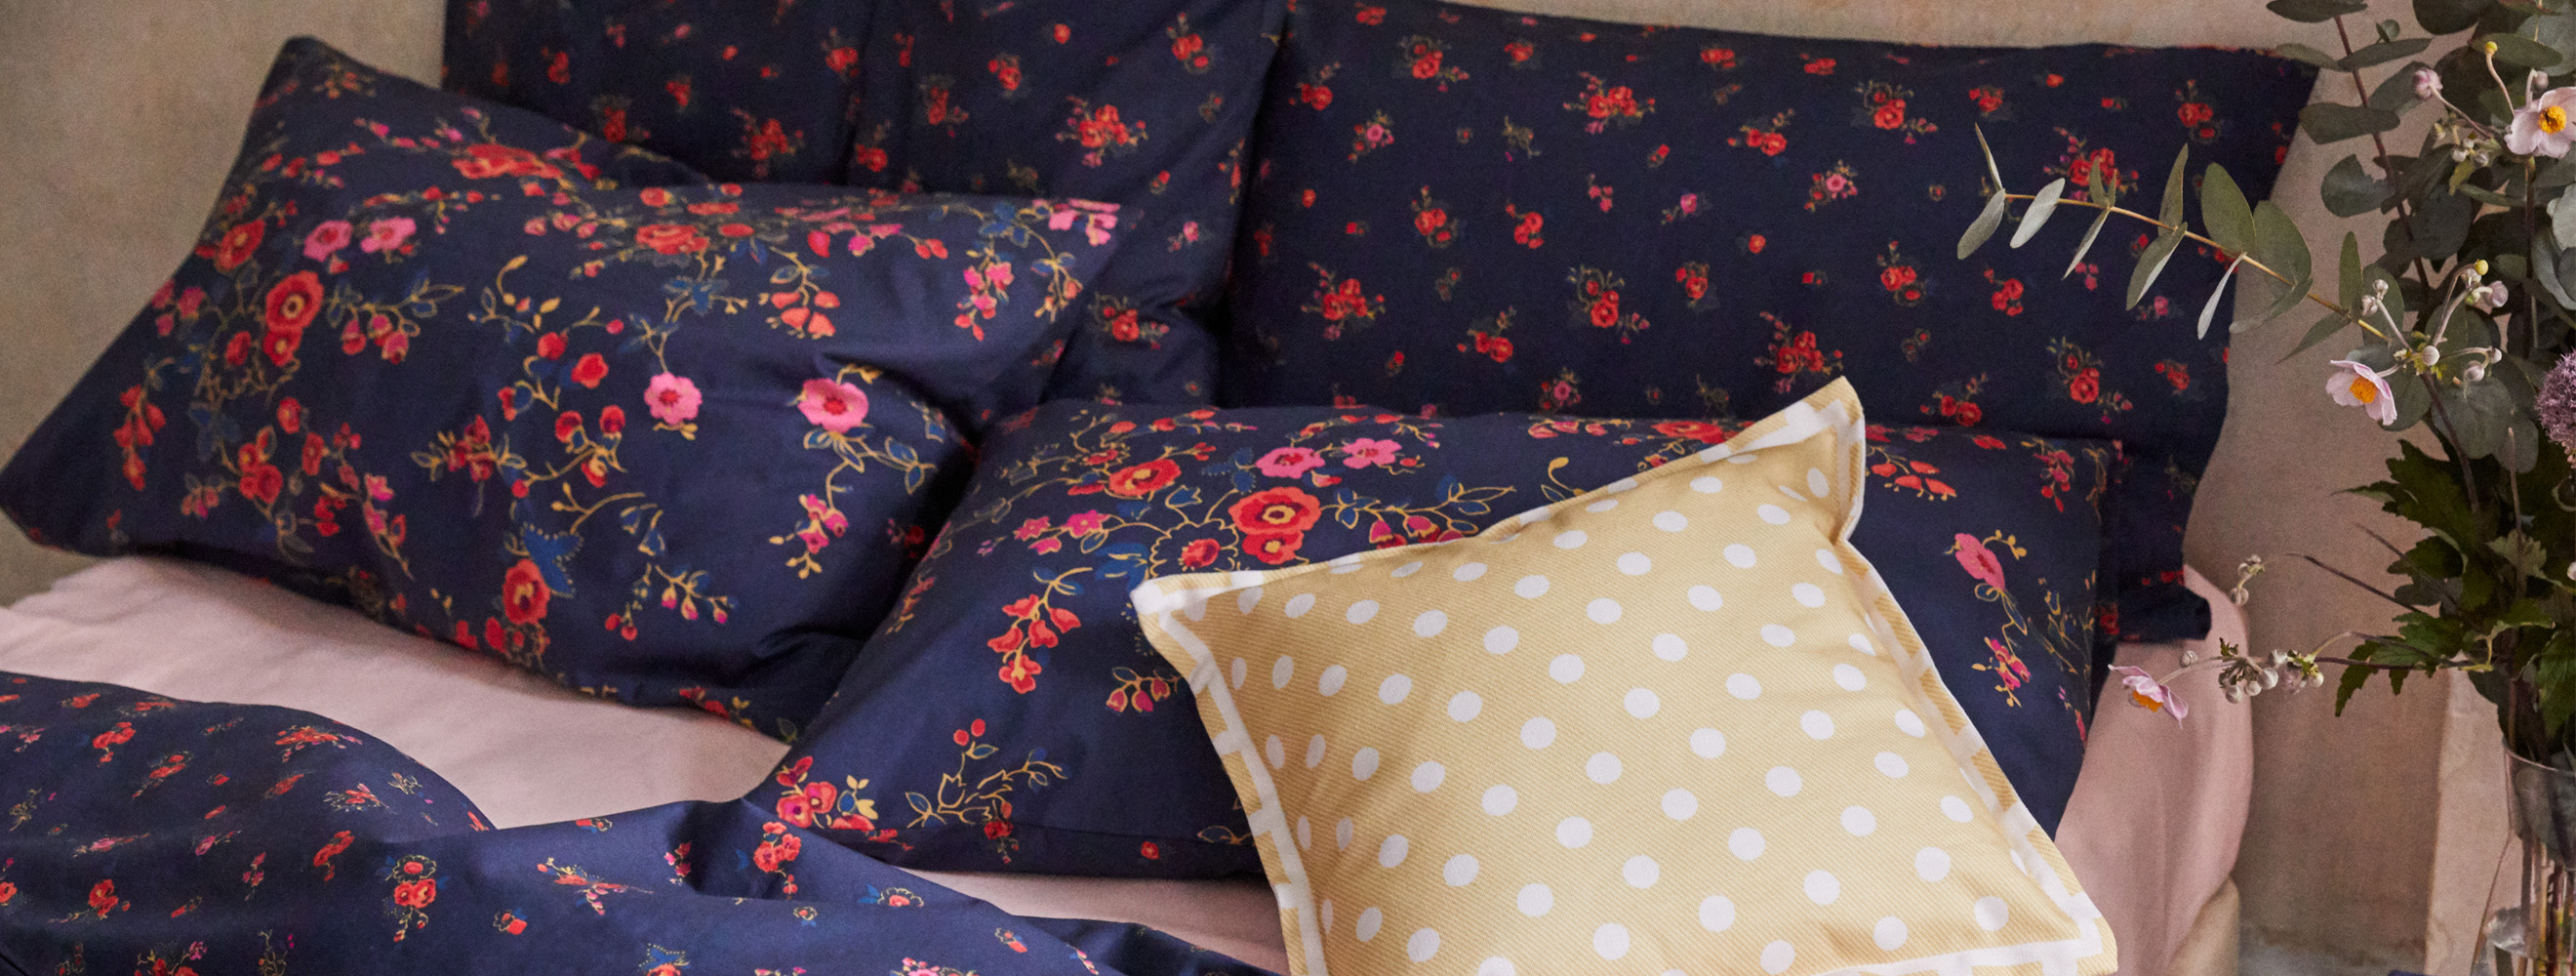 Tips to Refresh Your Home for Autumn